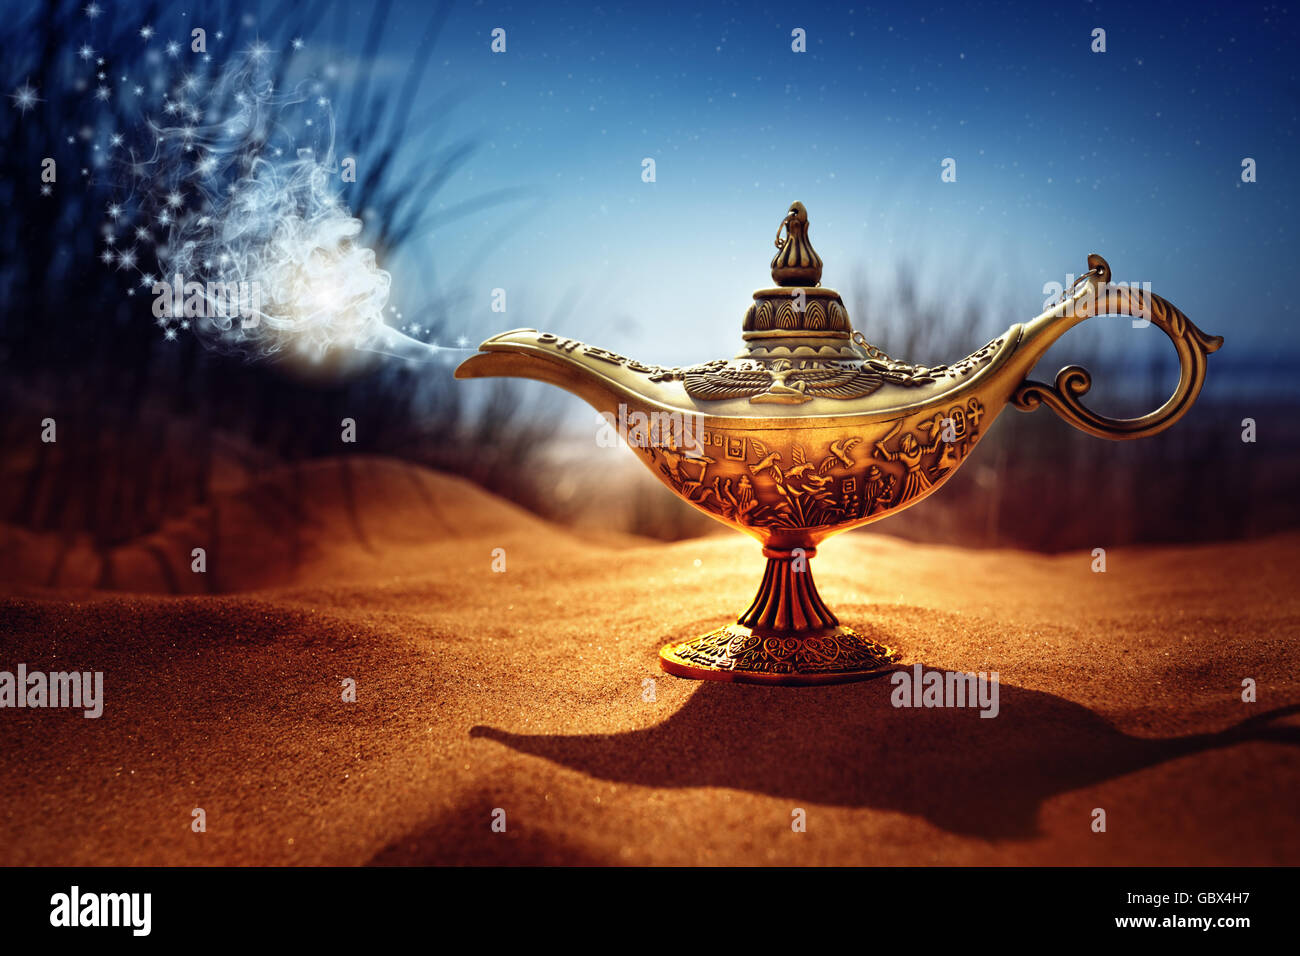 Magic Aladdin's Genie lamp - Stock Image